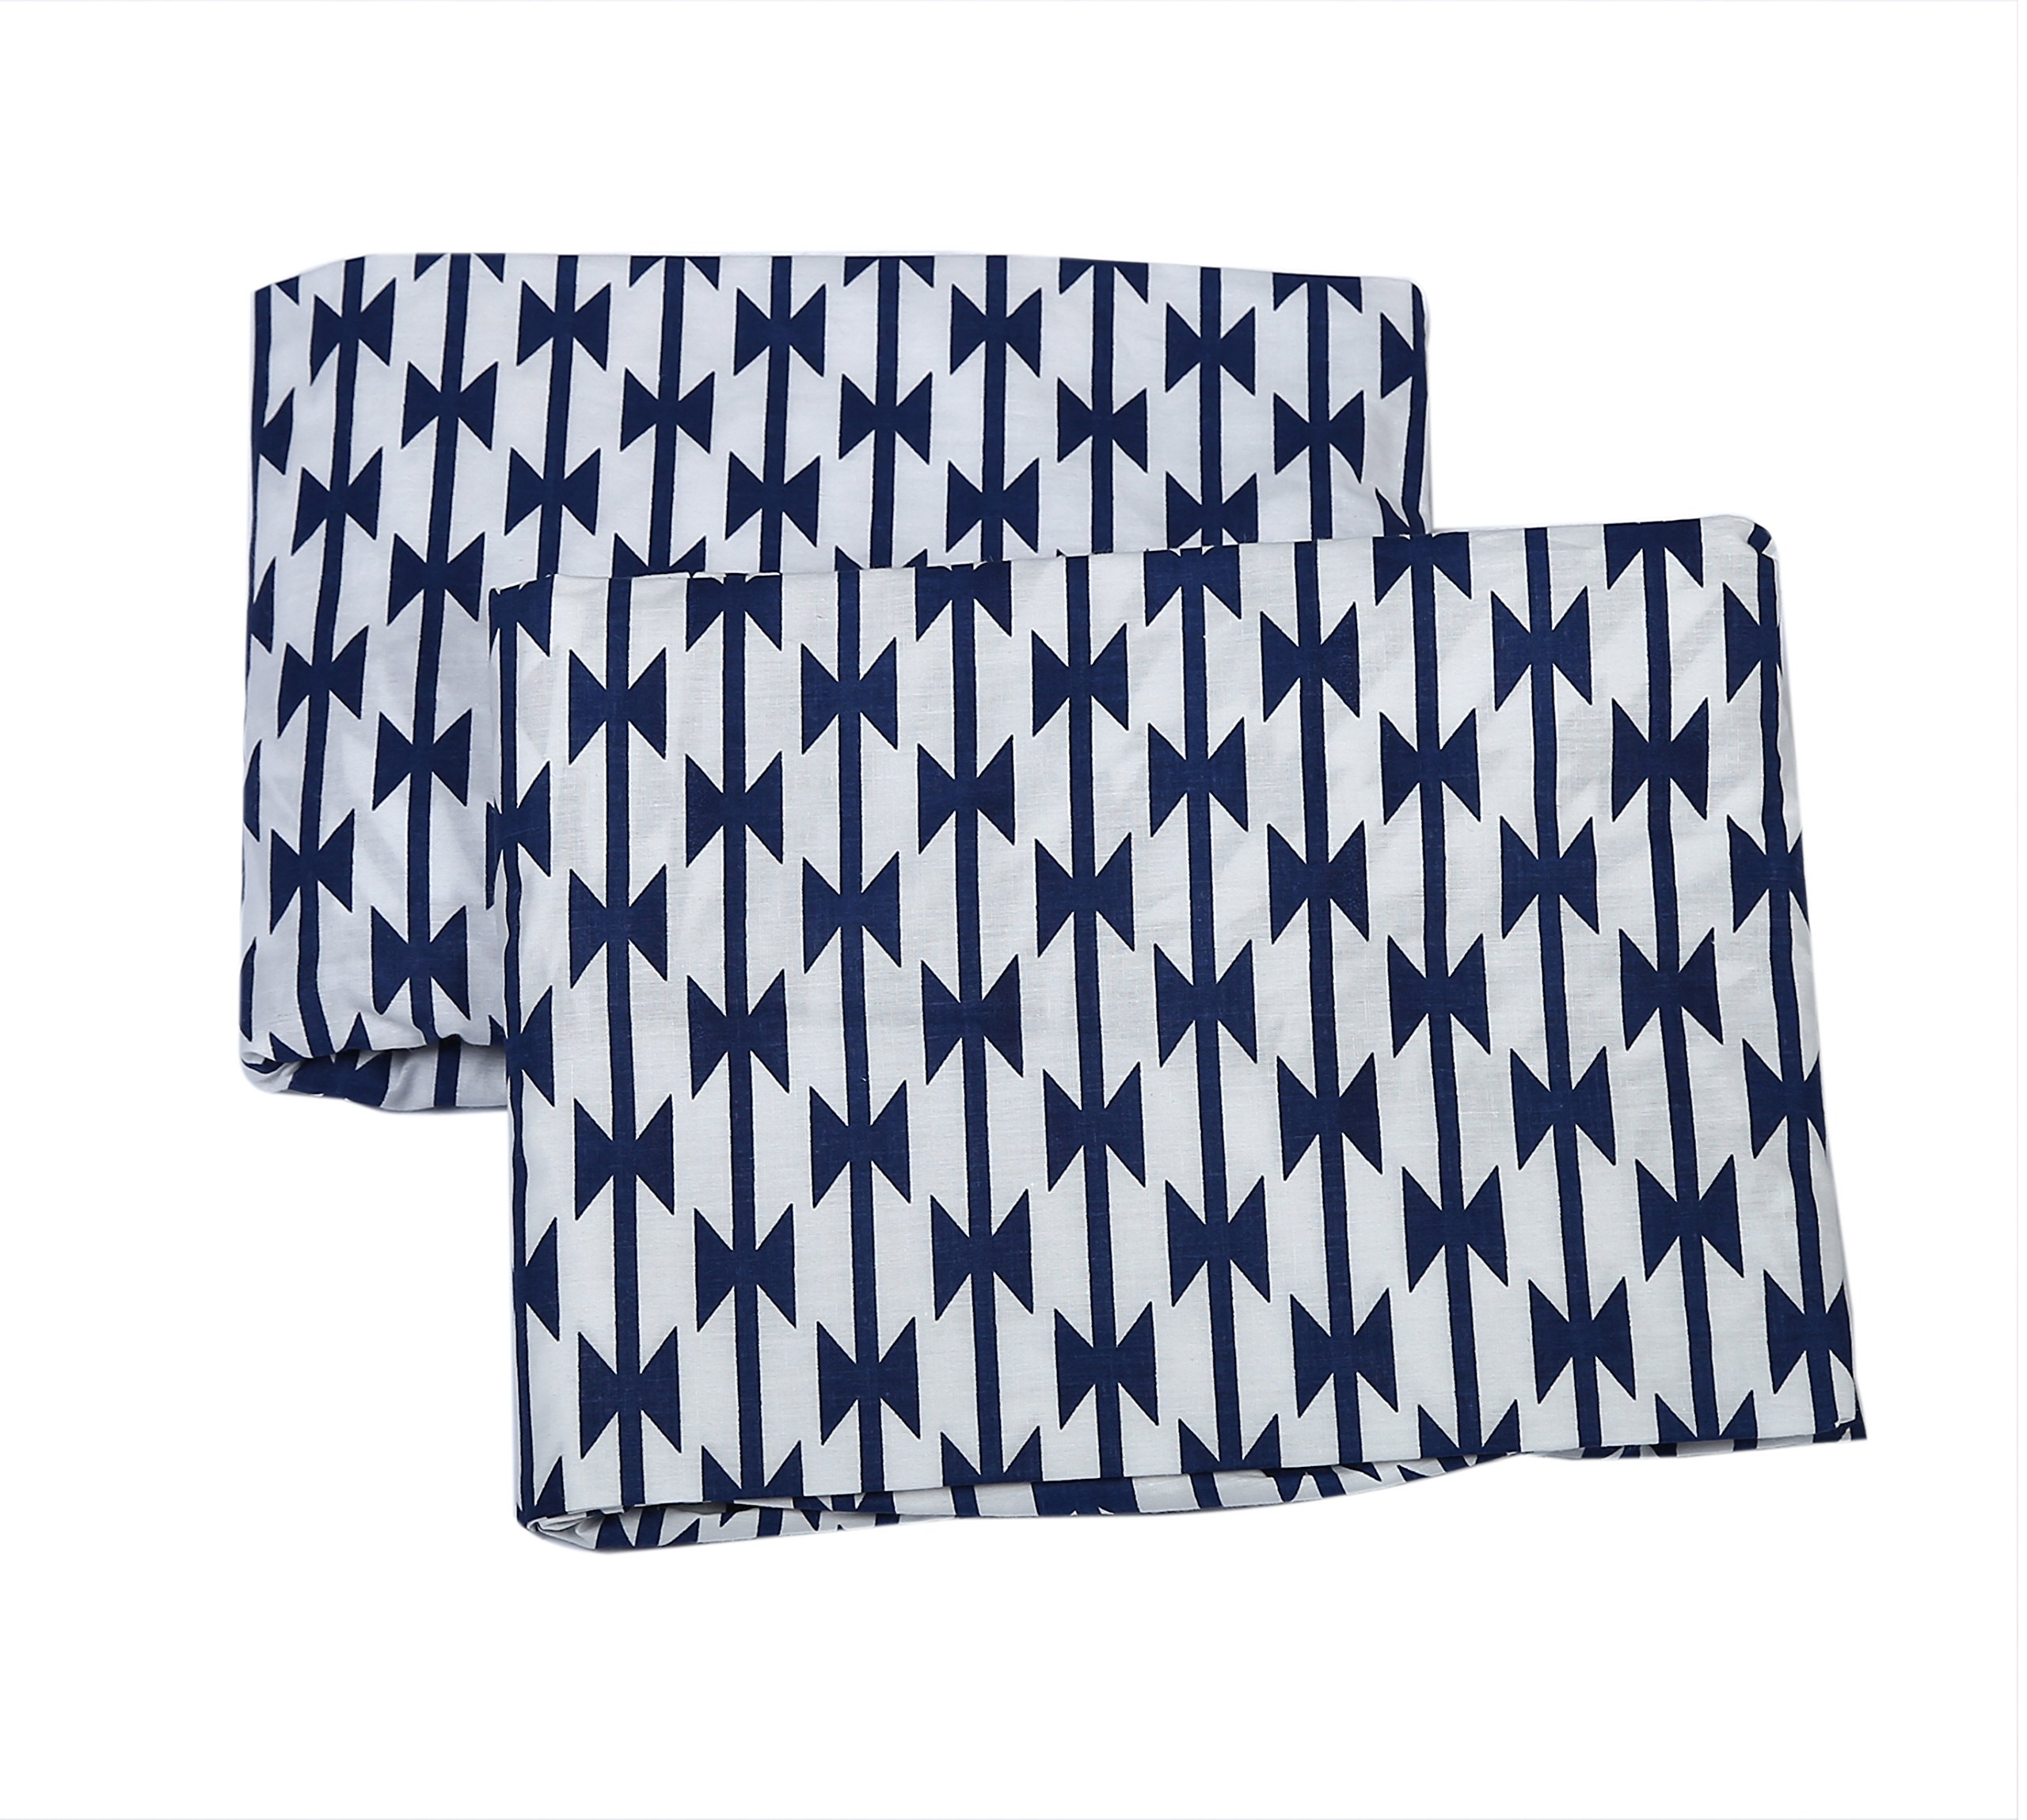 Bacati Aztec Kilim 2 Piece Crib/Toddler Bed Fitted Sheets Cotton Percale, Navy